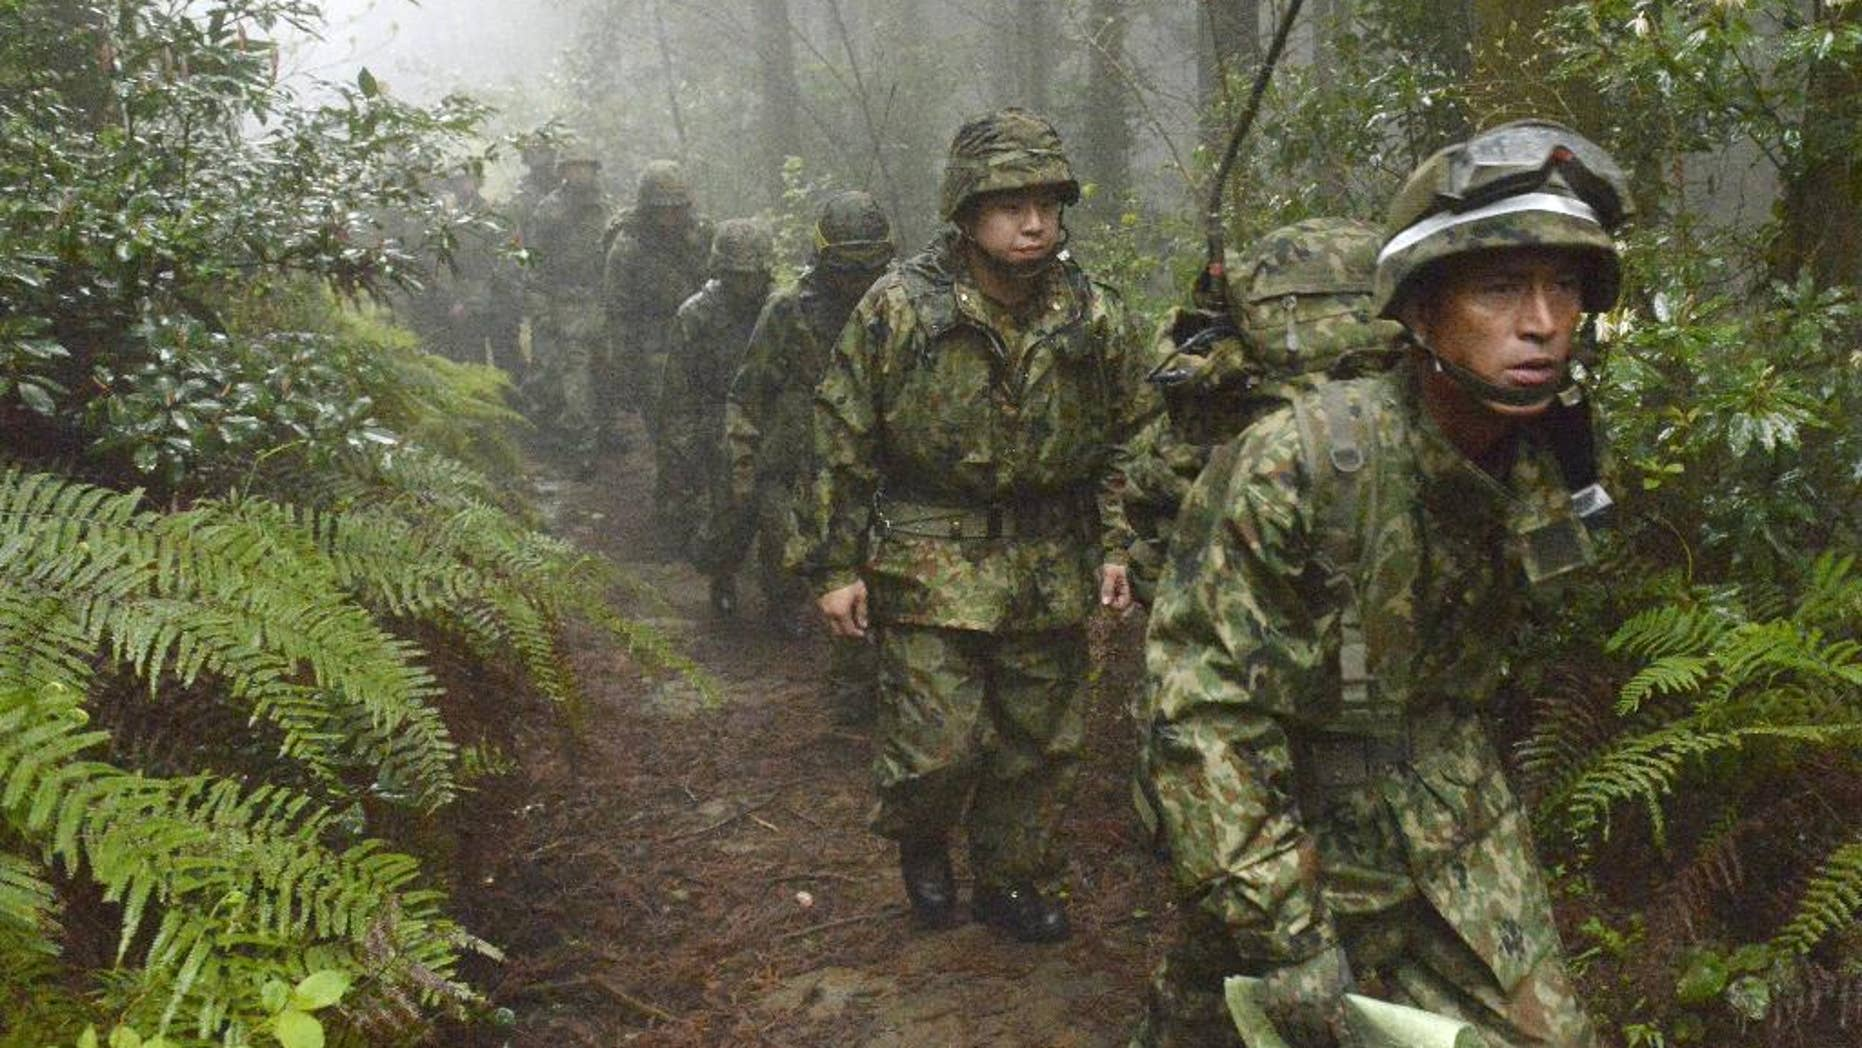 Members of the Japan Self-Defense Forces resume a search operation for a disapeared Japanese military jet carrying six airmen, in Kanoya city, Kagoshima prefecture, southern Japan, Thursday, April 7, 2016. The military jet carrying six airmen disappeared from radar over southern Japan on Wednesday afternoon, and the search has been suspended for the night. The plane disappeared about an hour after takeoff from Kanoya base for what was supposed to be a three-hour flight, the Defense Ministry said. (Sadayuki Goto/Kyodo News via AP) JAPAN OUT, CREDIT MANDATORY